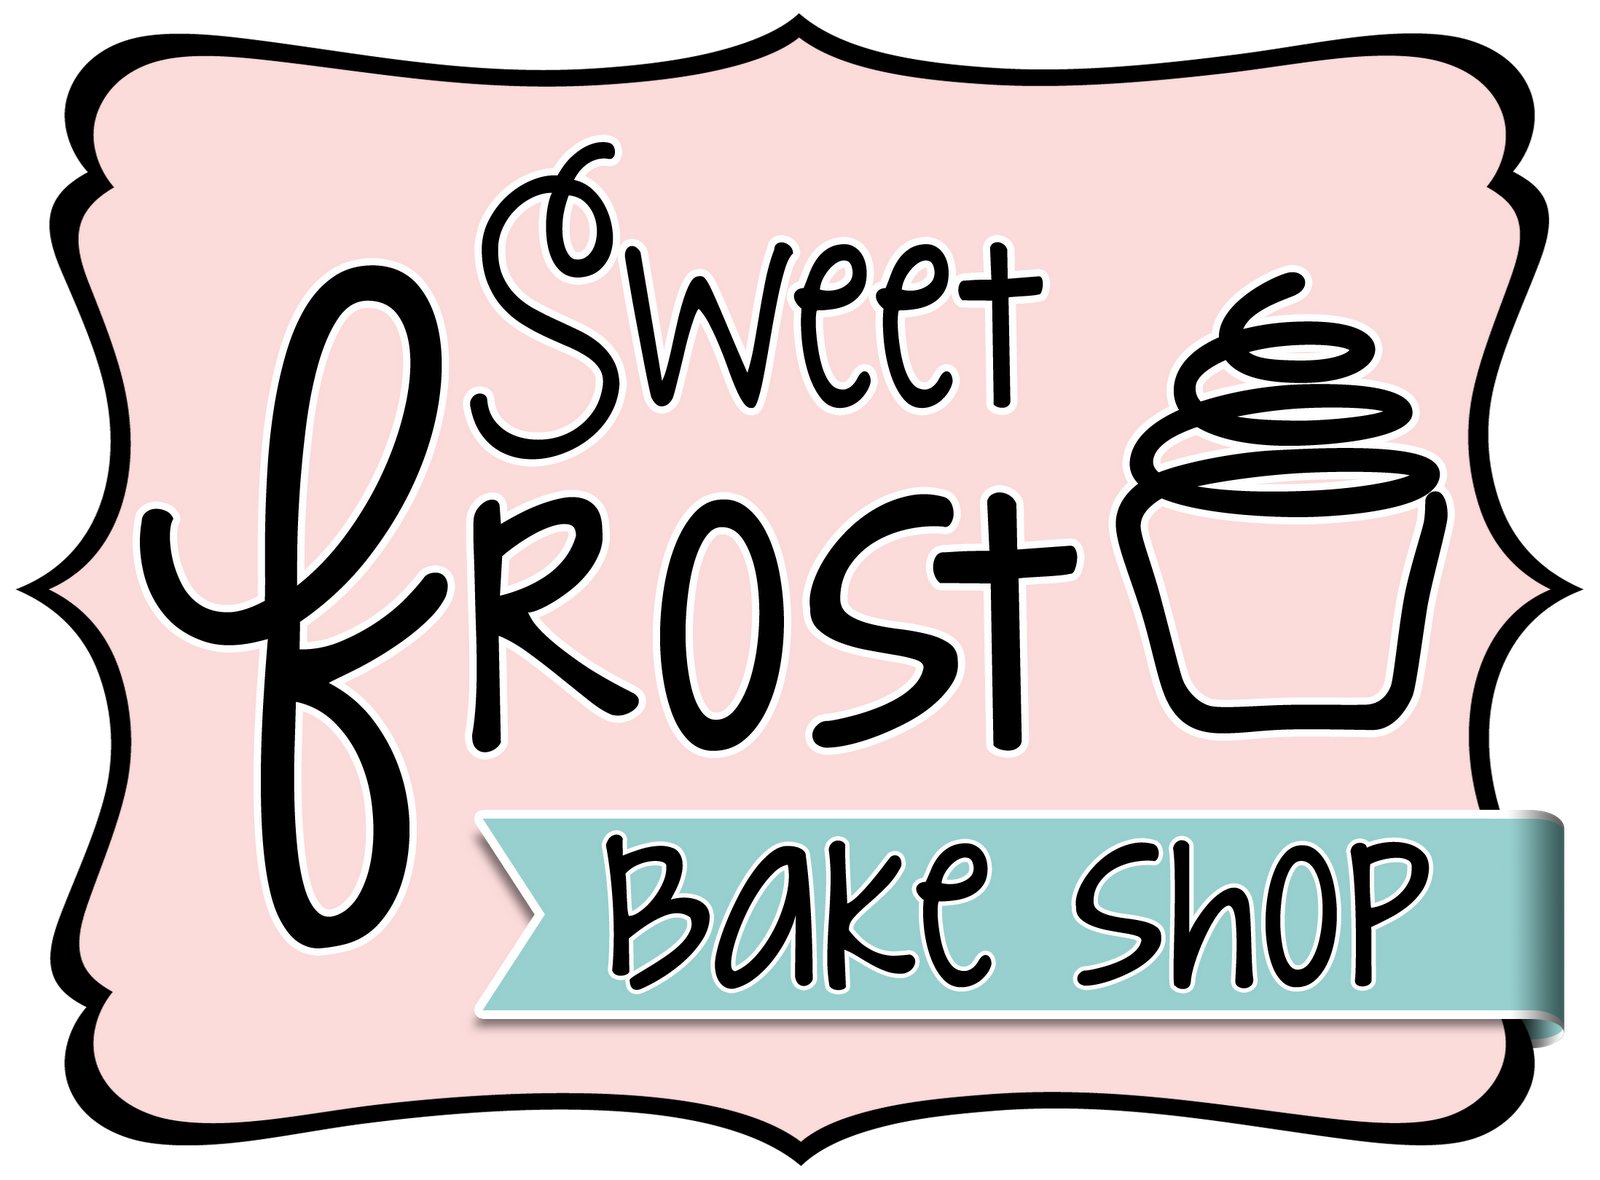 Storefront clipart illustrated. Free bakery cliparts download